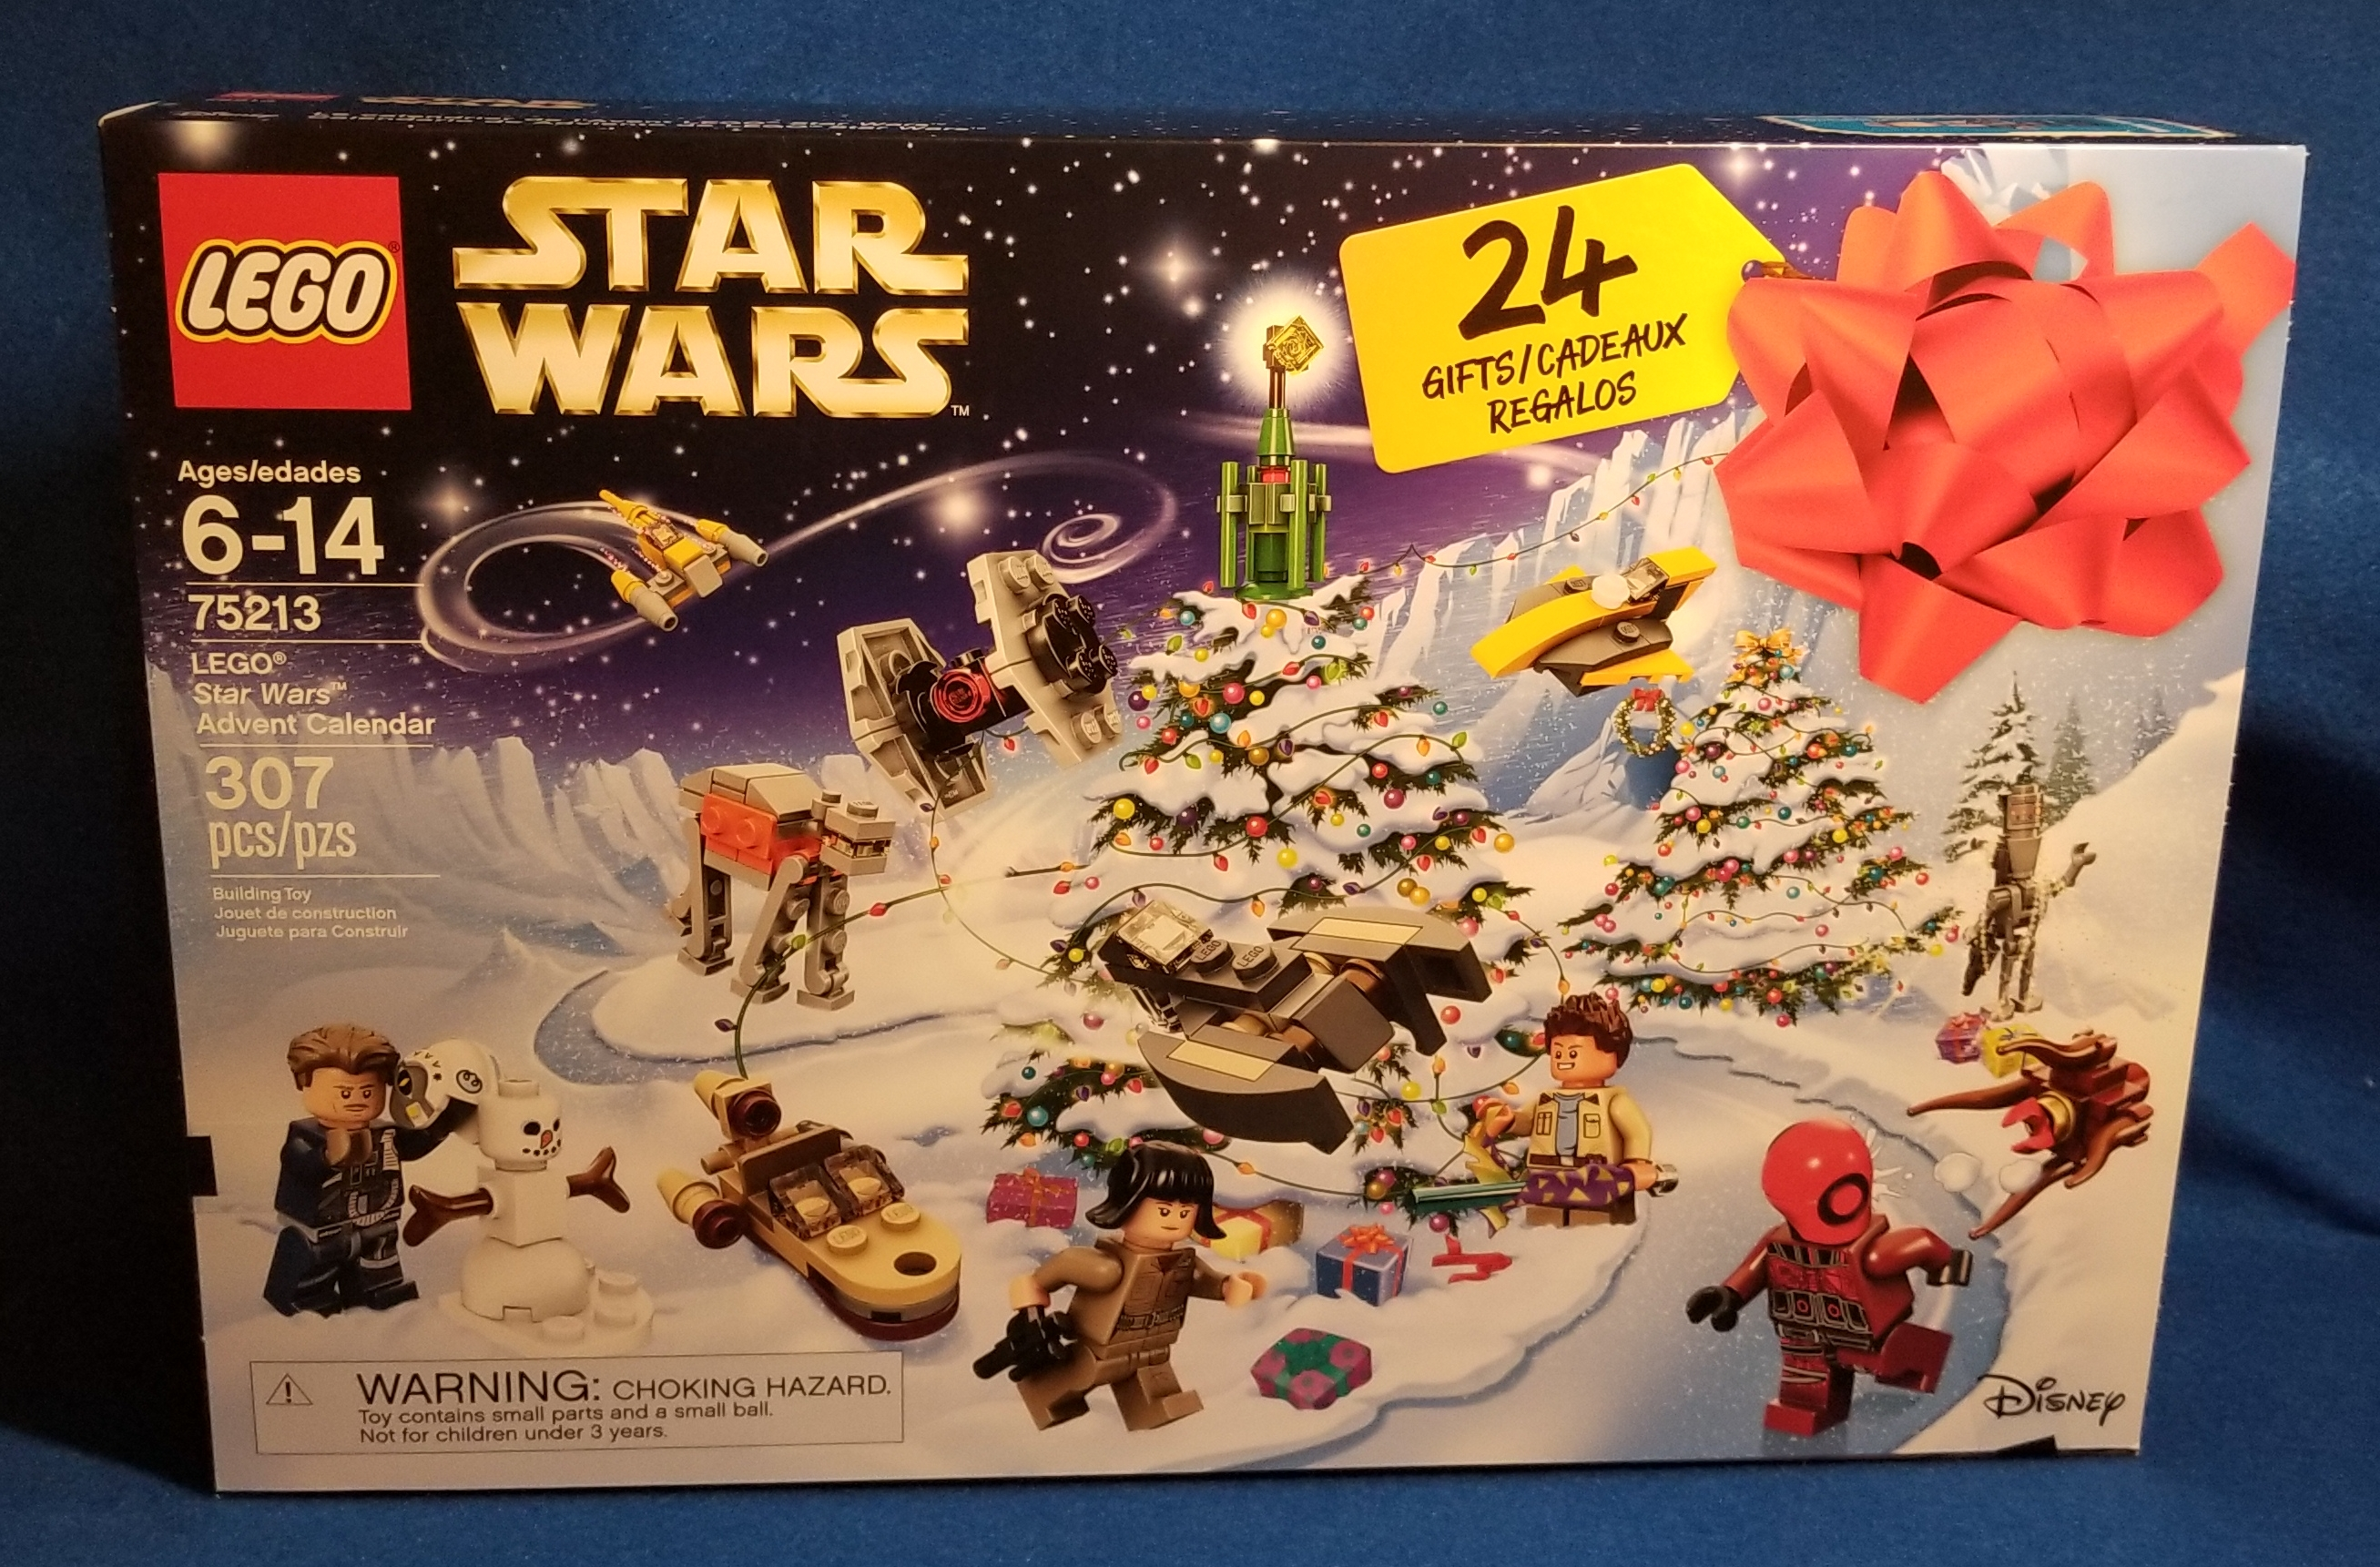 Lego 75213 Star Wars Advent Calendar 2018 with 307 pc Minifigures Ships From USA